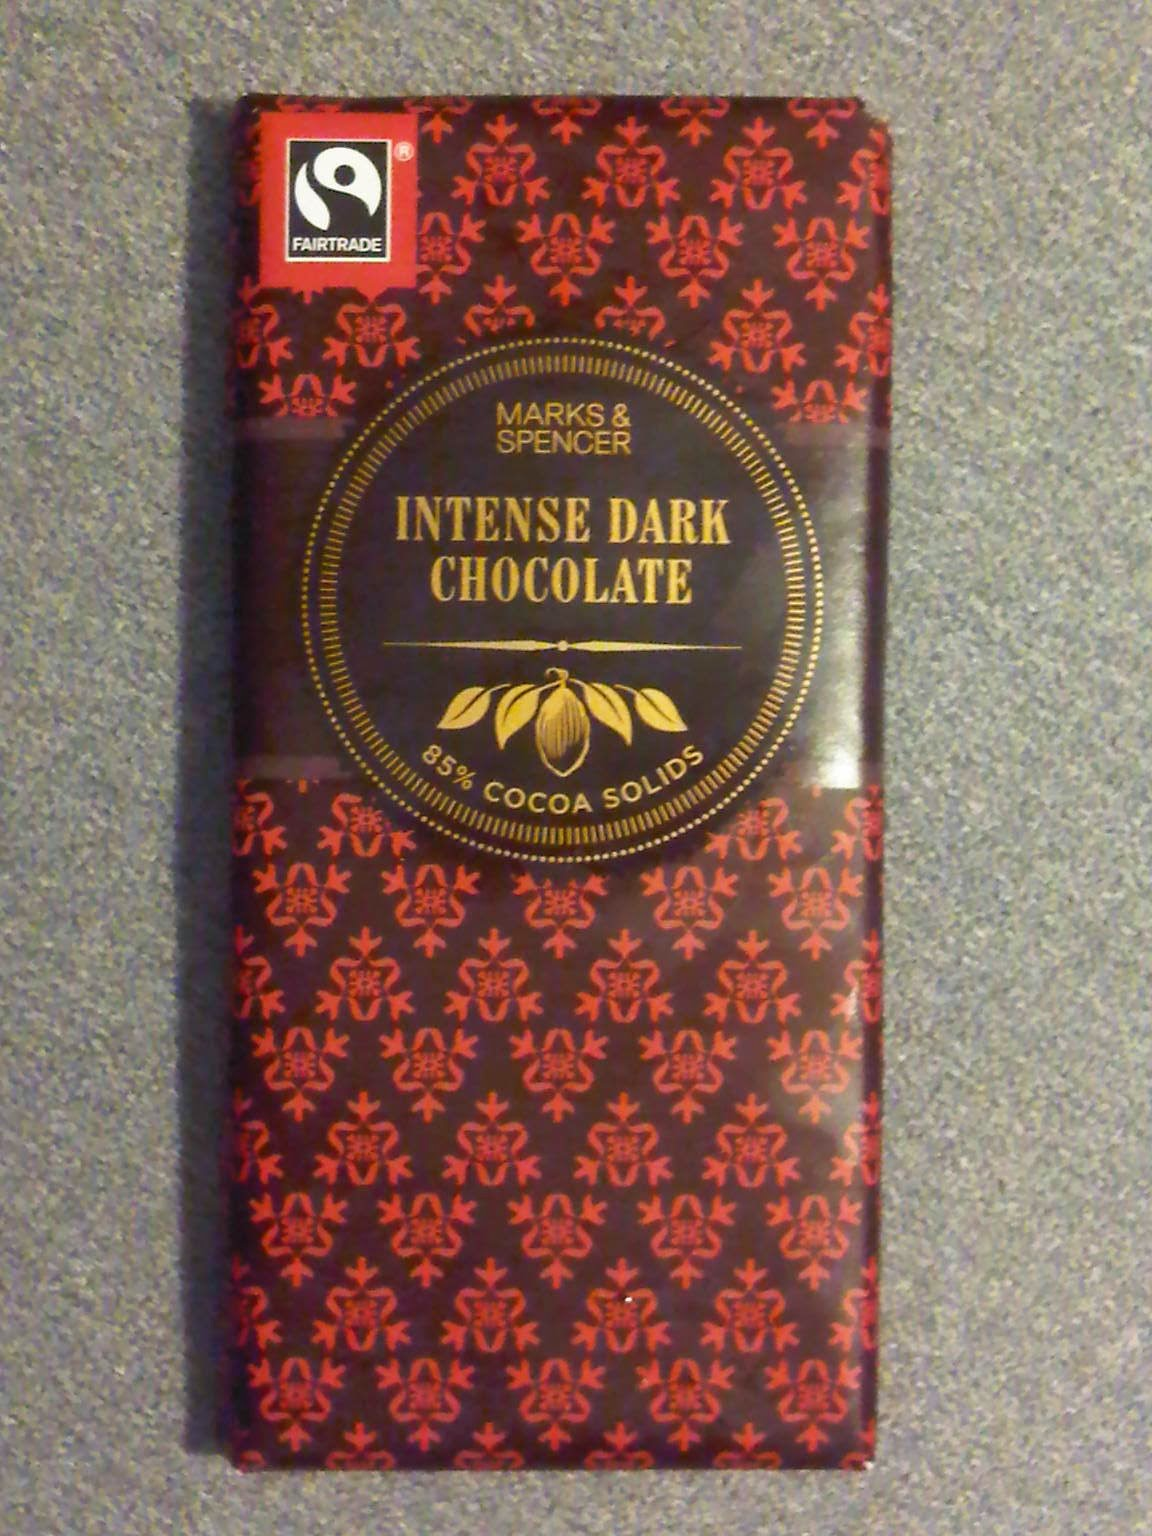 Regins realm chocolate review marks and spencer intense dark the packaging for marks spencer intense dark chocolate is like a gift wrap negle Image collections